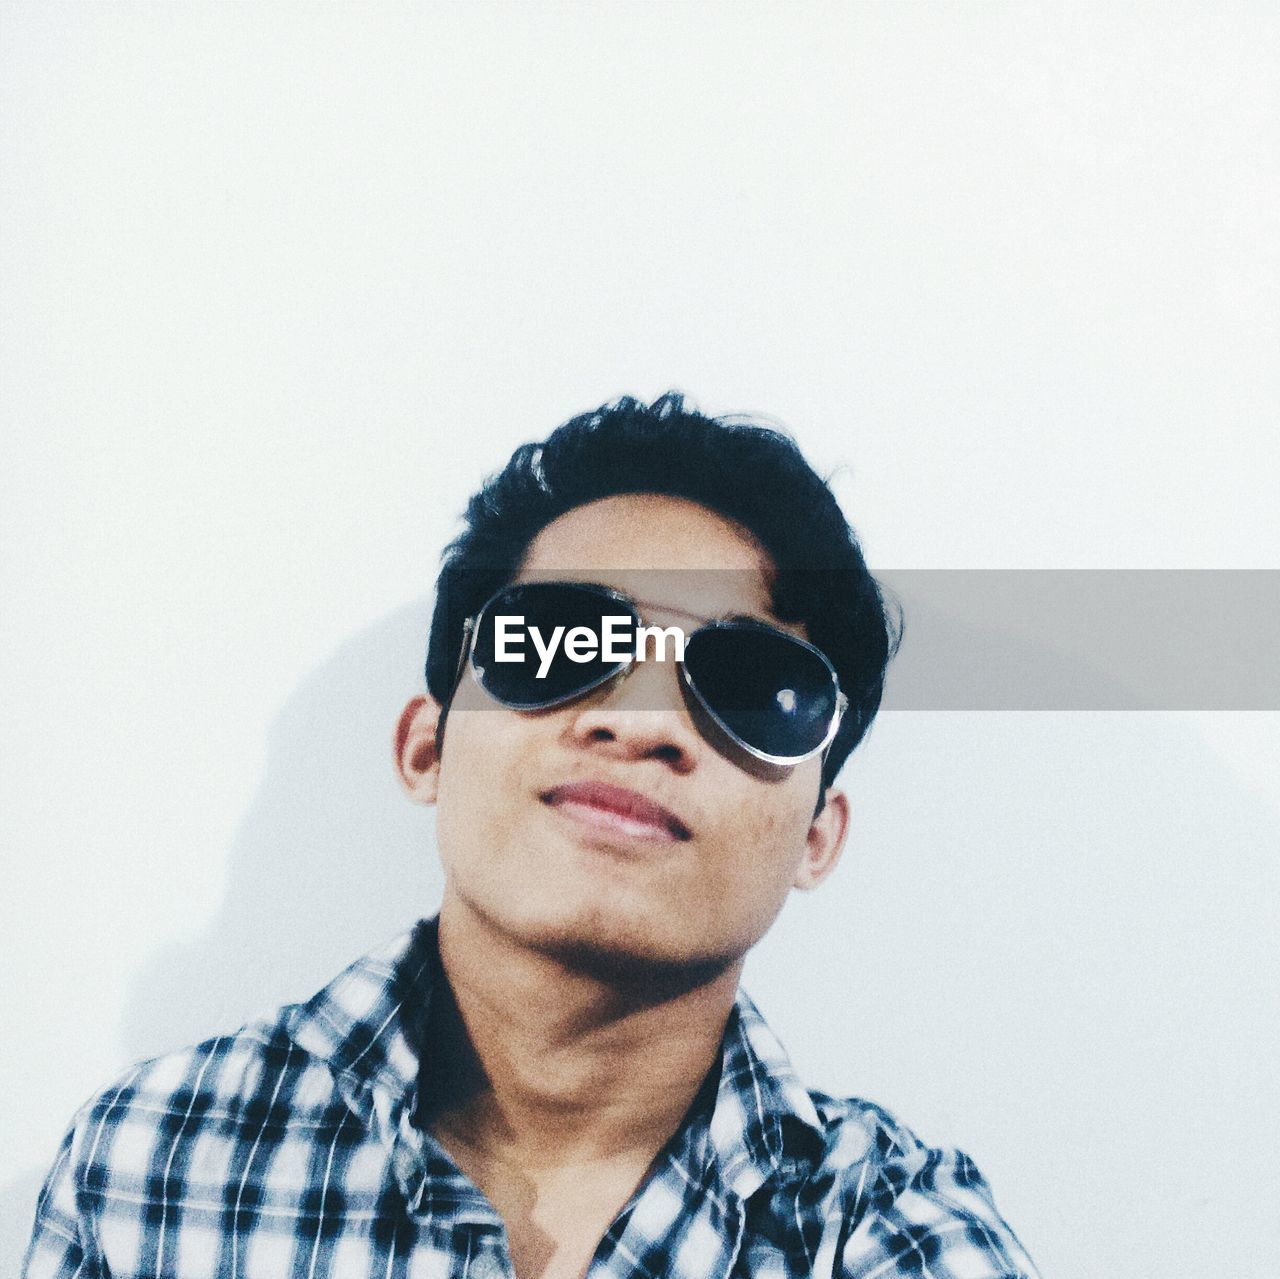 sunglasses, real people, one person, young adult, portrait, front view, casual clothing, young men, lifestyles, looking at camera, white background, eyeglasses, eyewear, technology, day, close-up, outdoors